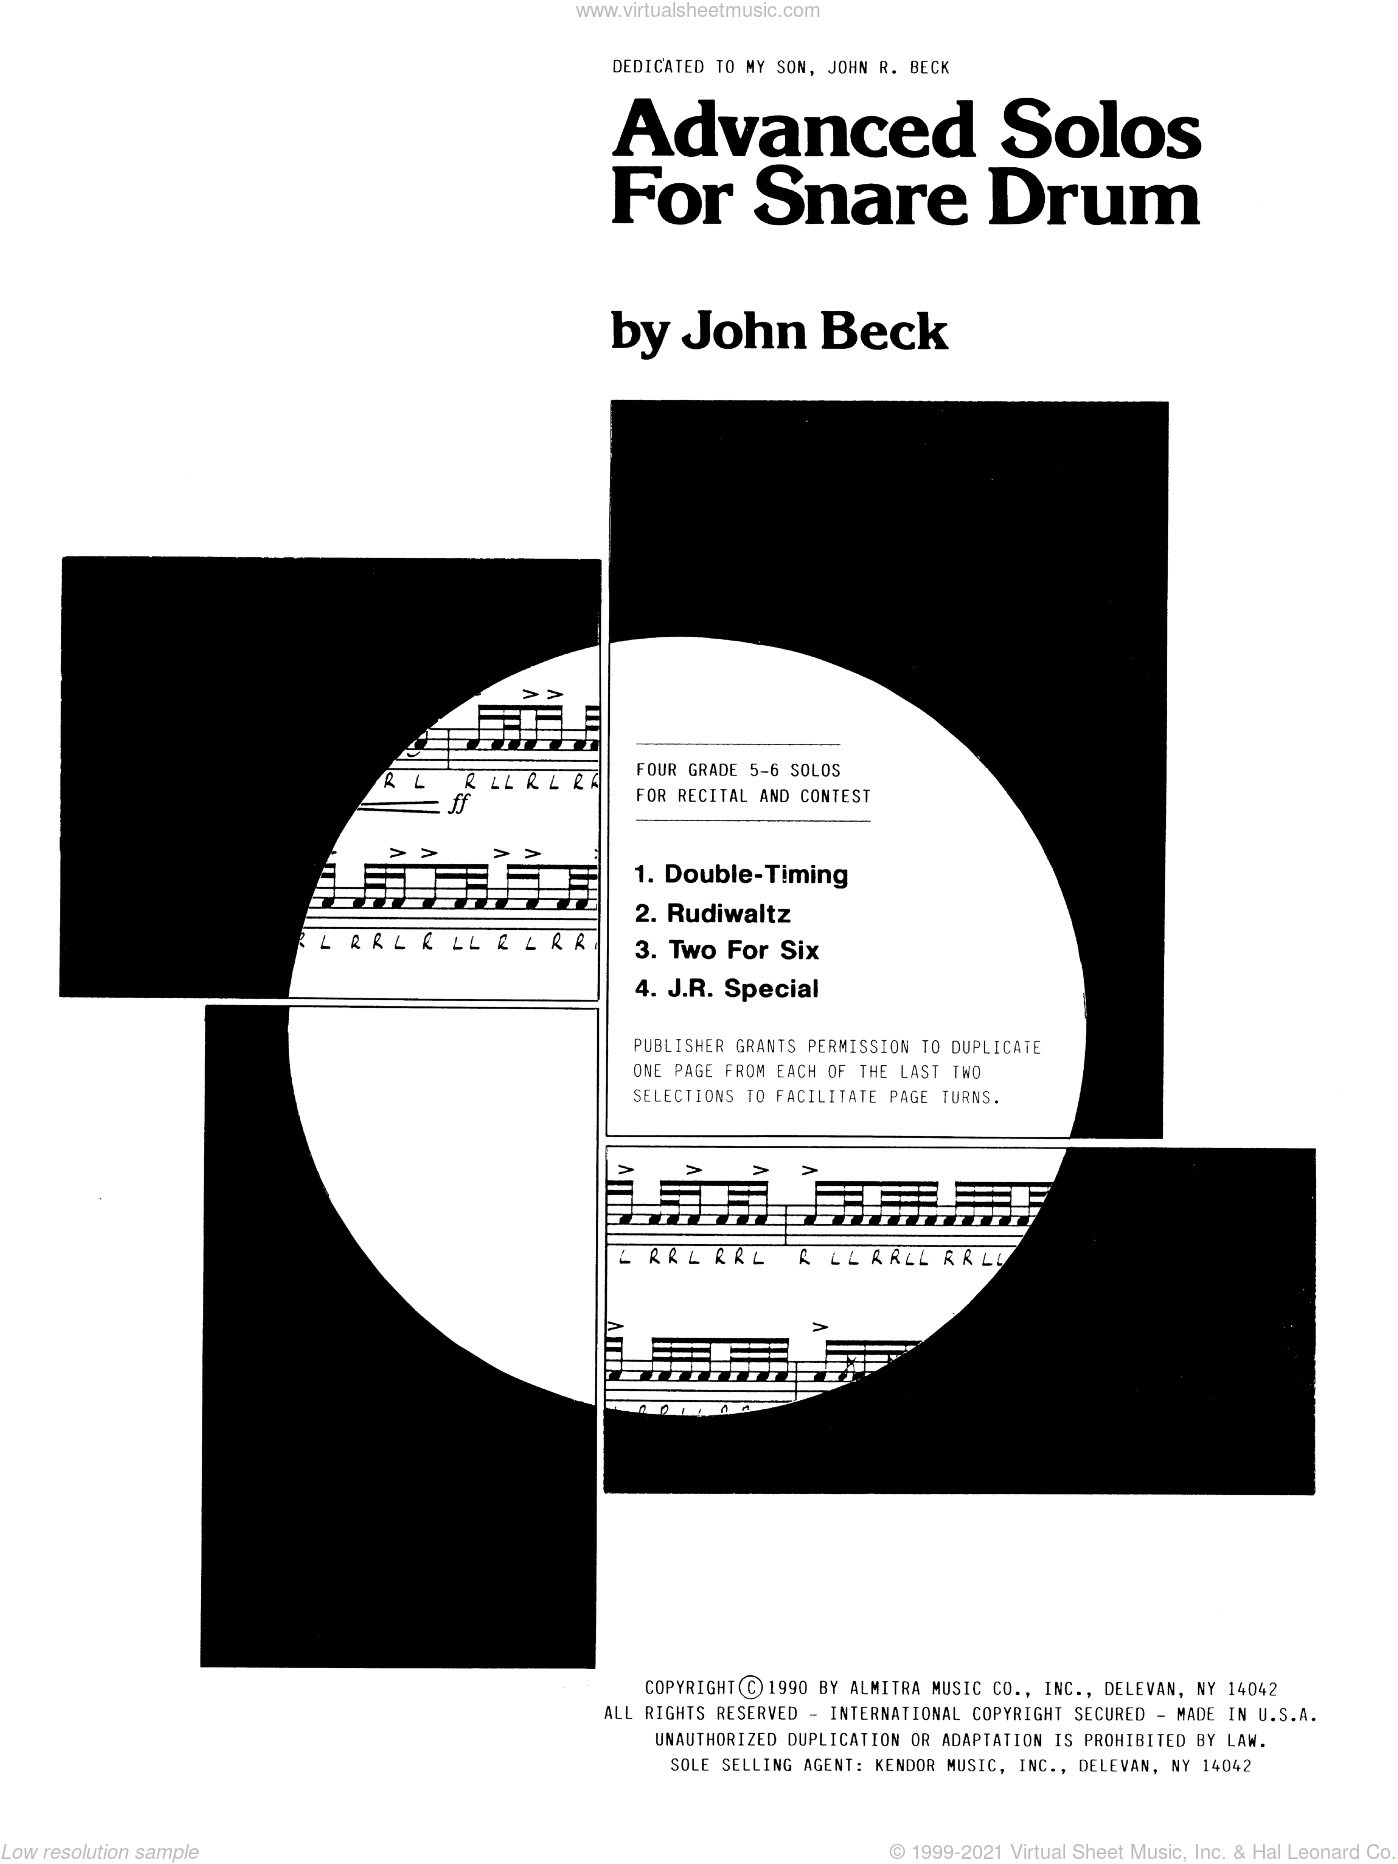 Advanced Solos For Snare Drum sheet music for percussions by John H. Beck